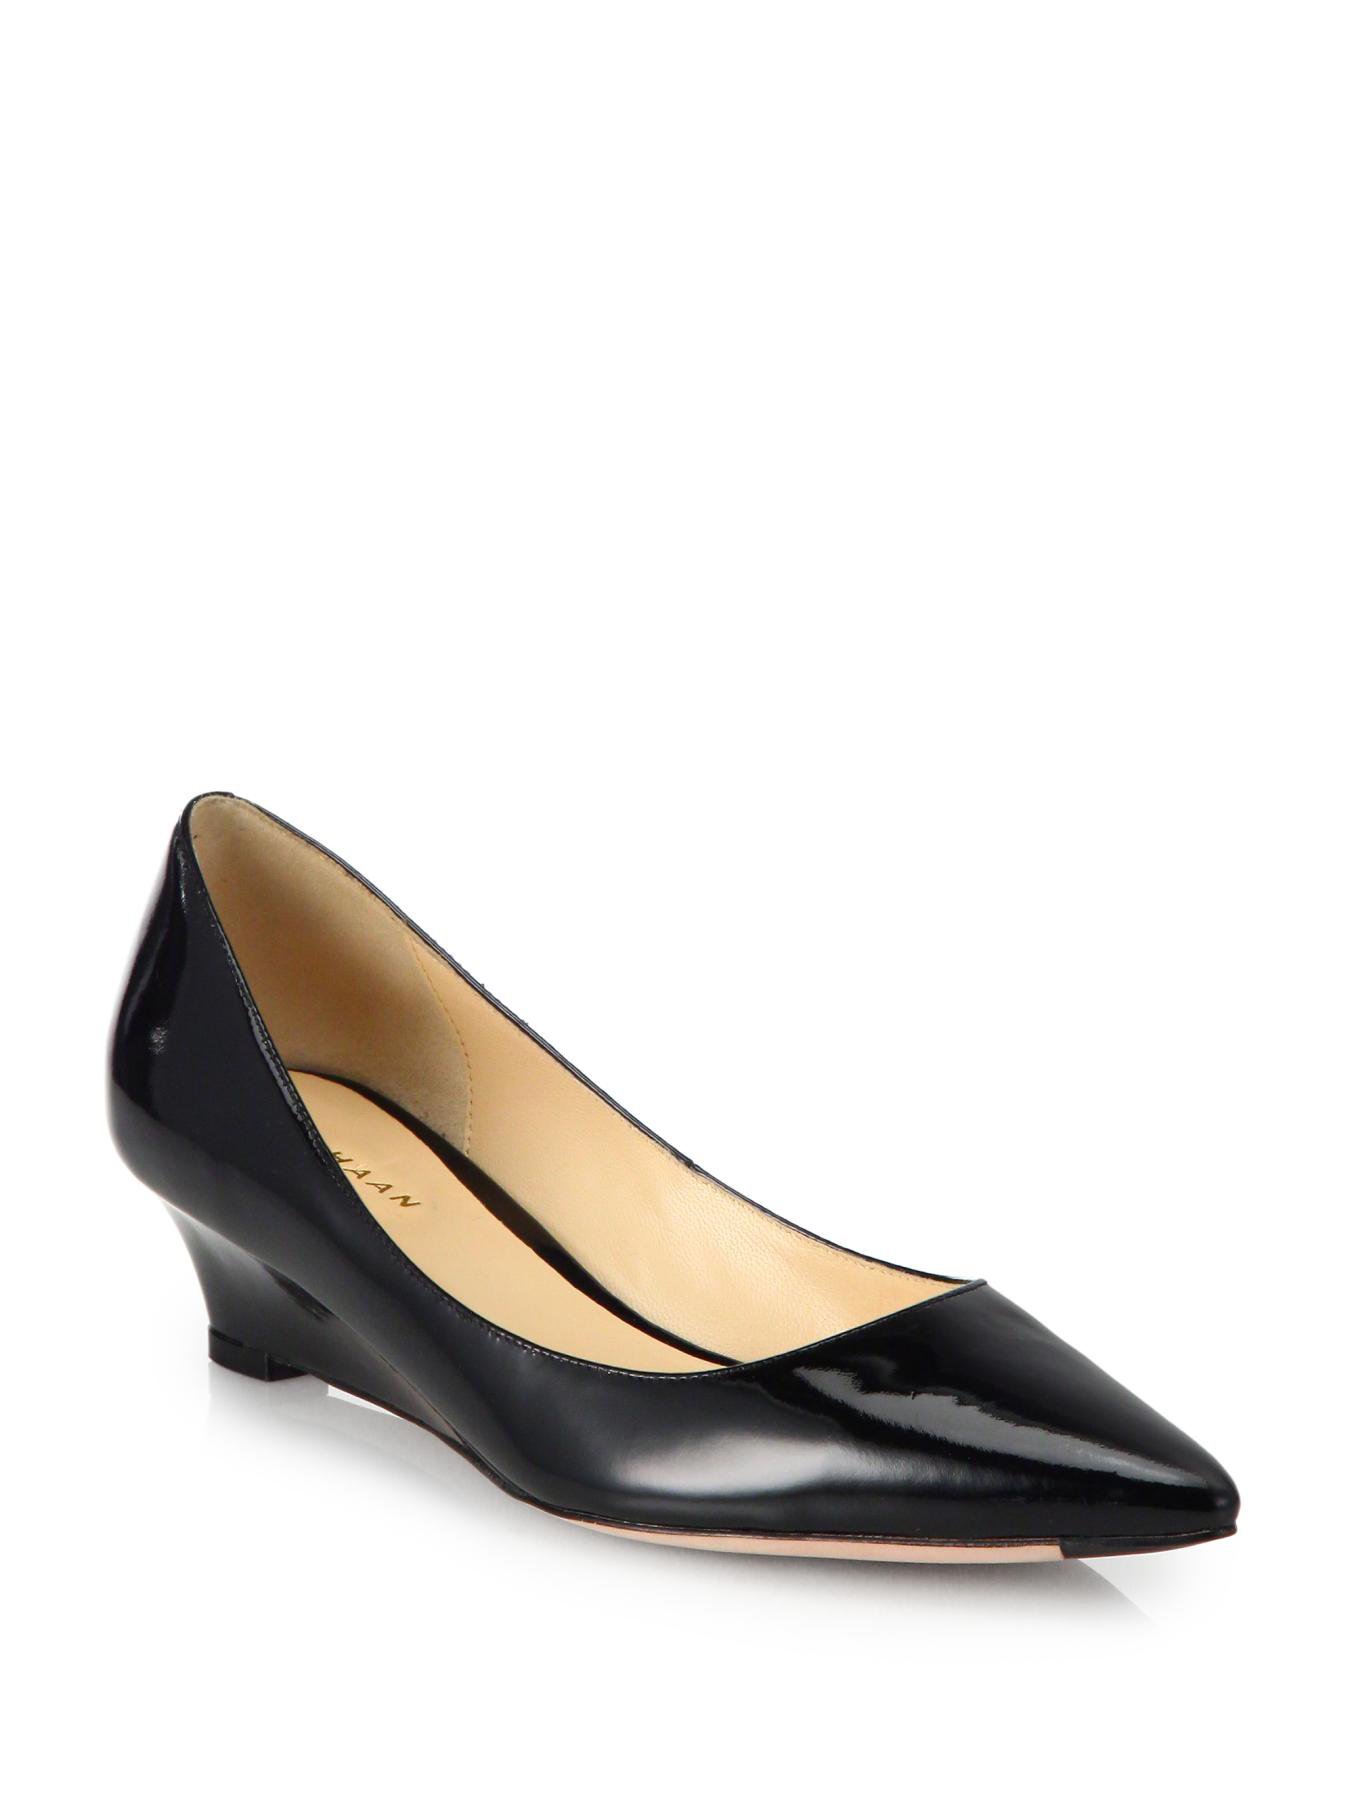 cole haan bradshaw patent leather wedge pumps in black lyst. Black Bedroom Furniture Sets. Home Design Ideas